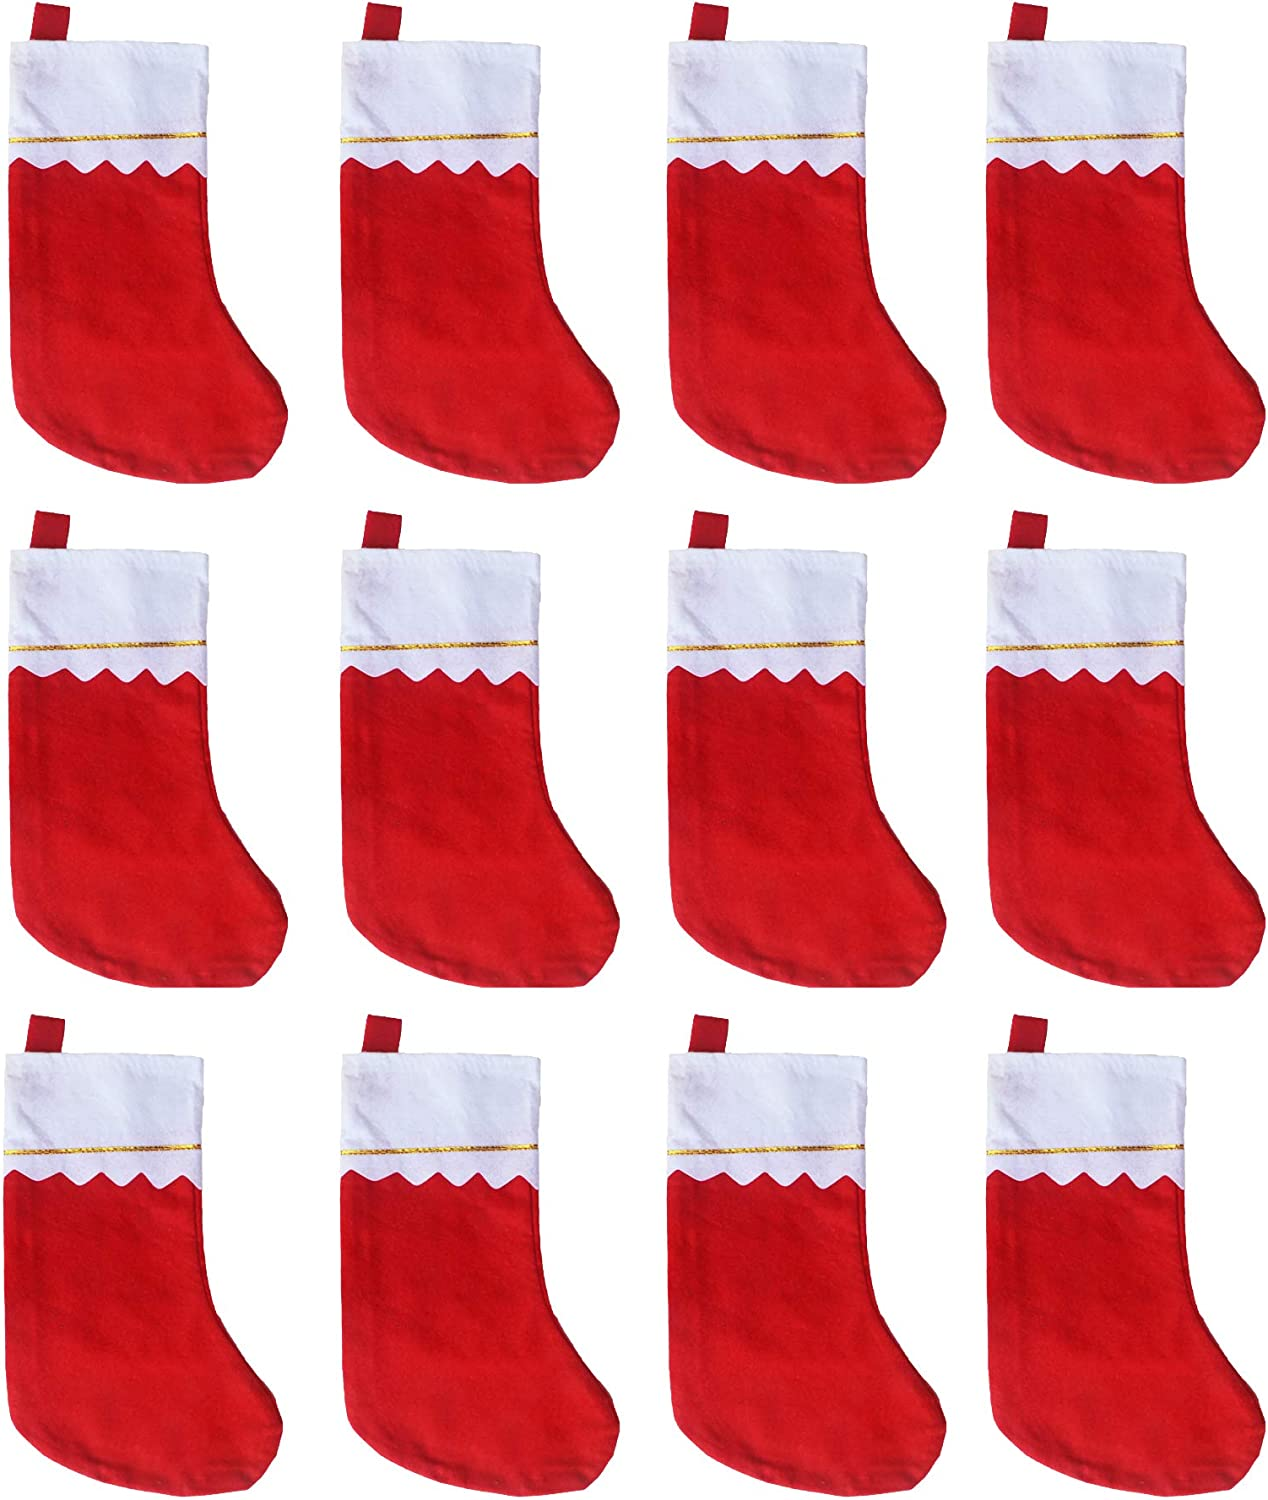 ANIUHL 12 Pcs Free shipping on posting reviews DIY Allowed Basic Inc 15 Cheap super special price Felt Christmas Stockings